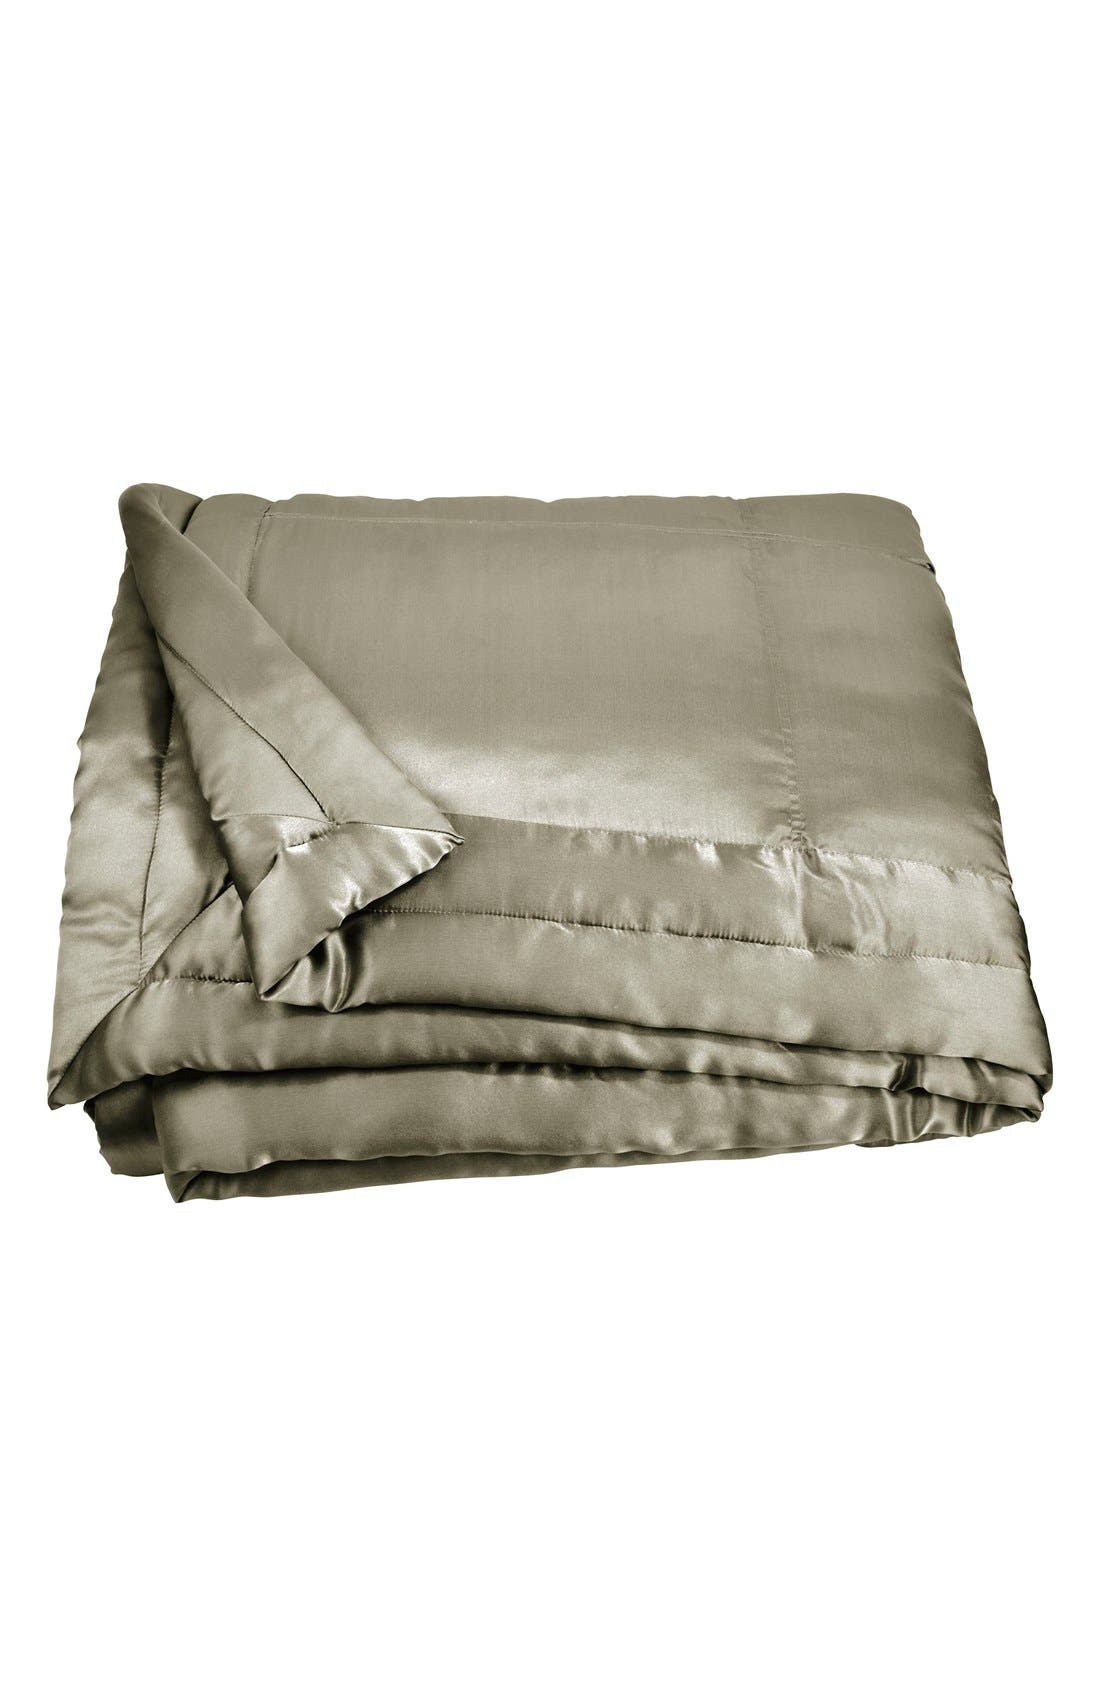 Donna Karan Collection 'Exhale' Silk Charmeuse Quilt